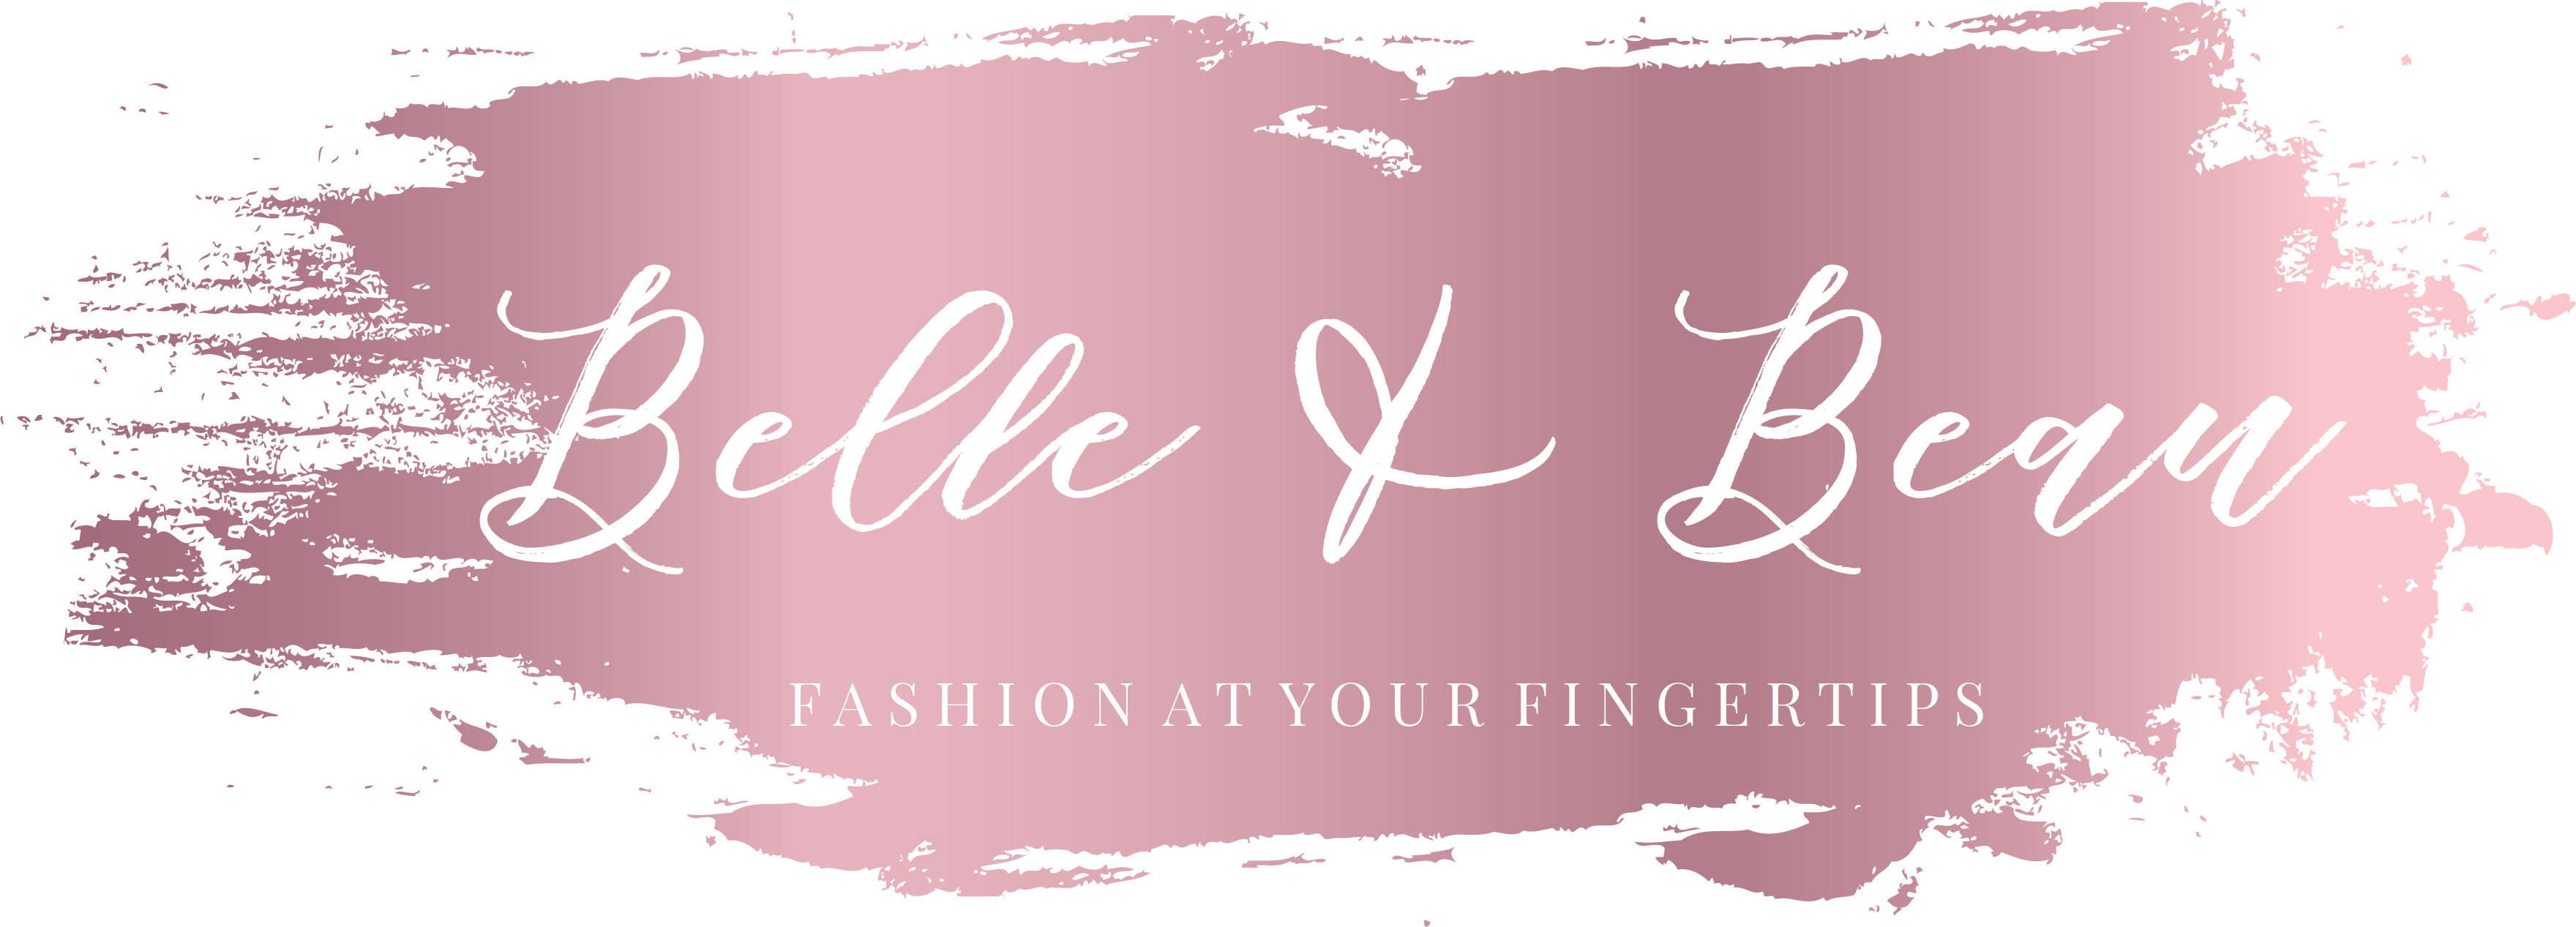 Belle And Beau Coupons and Promo Code